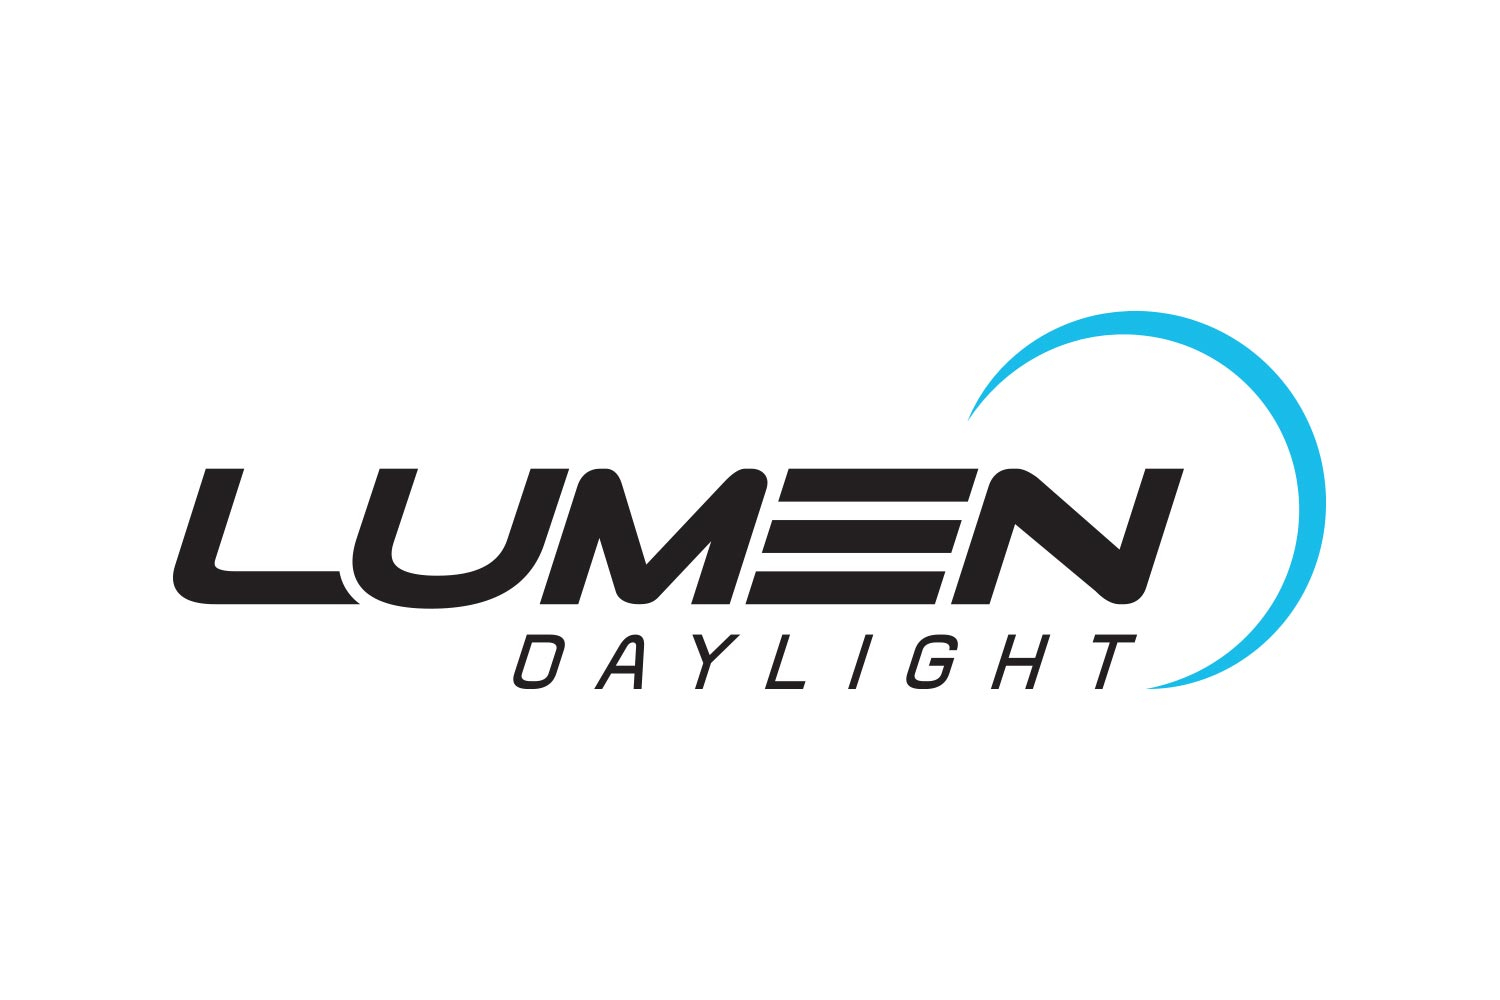 Lumen Cyclops9 LED extraljus